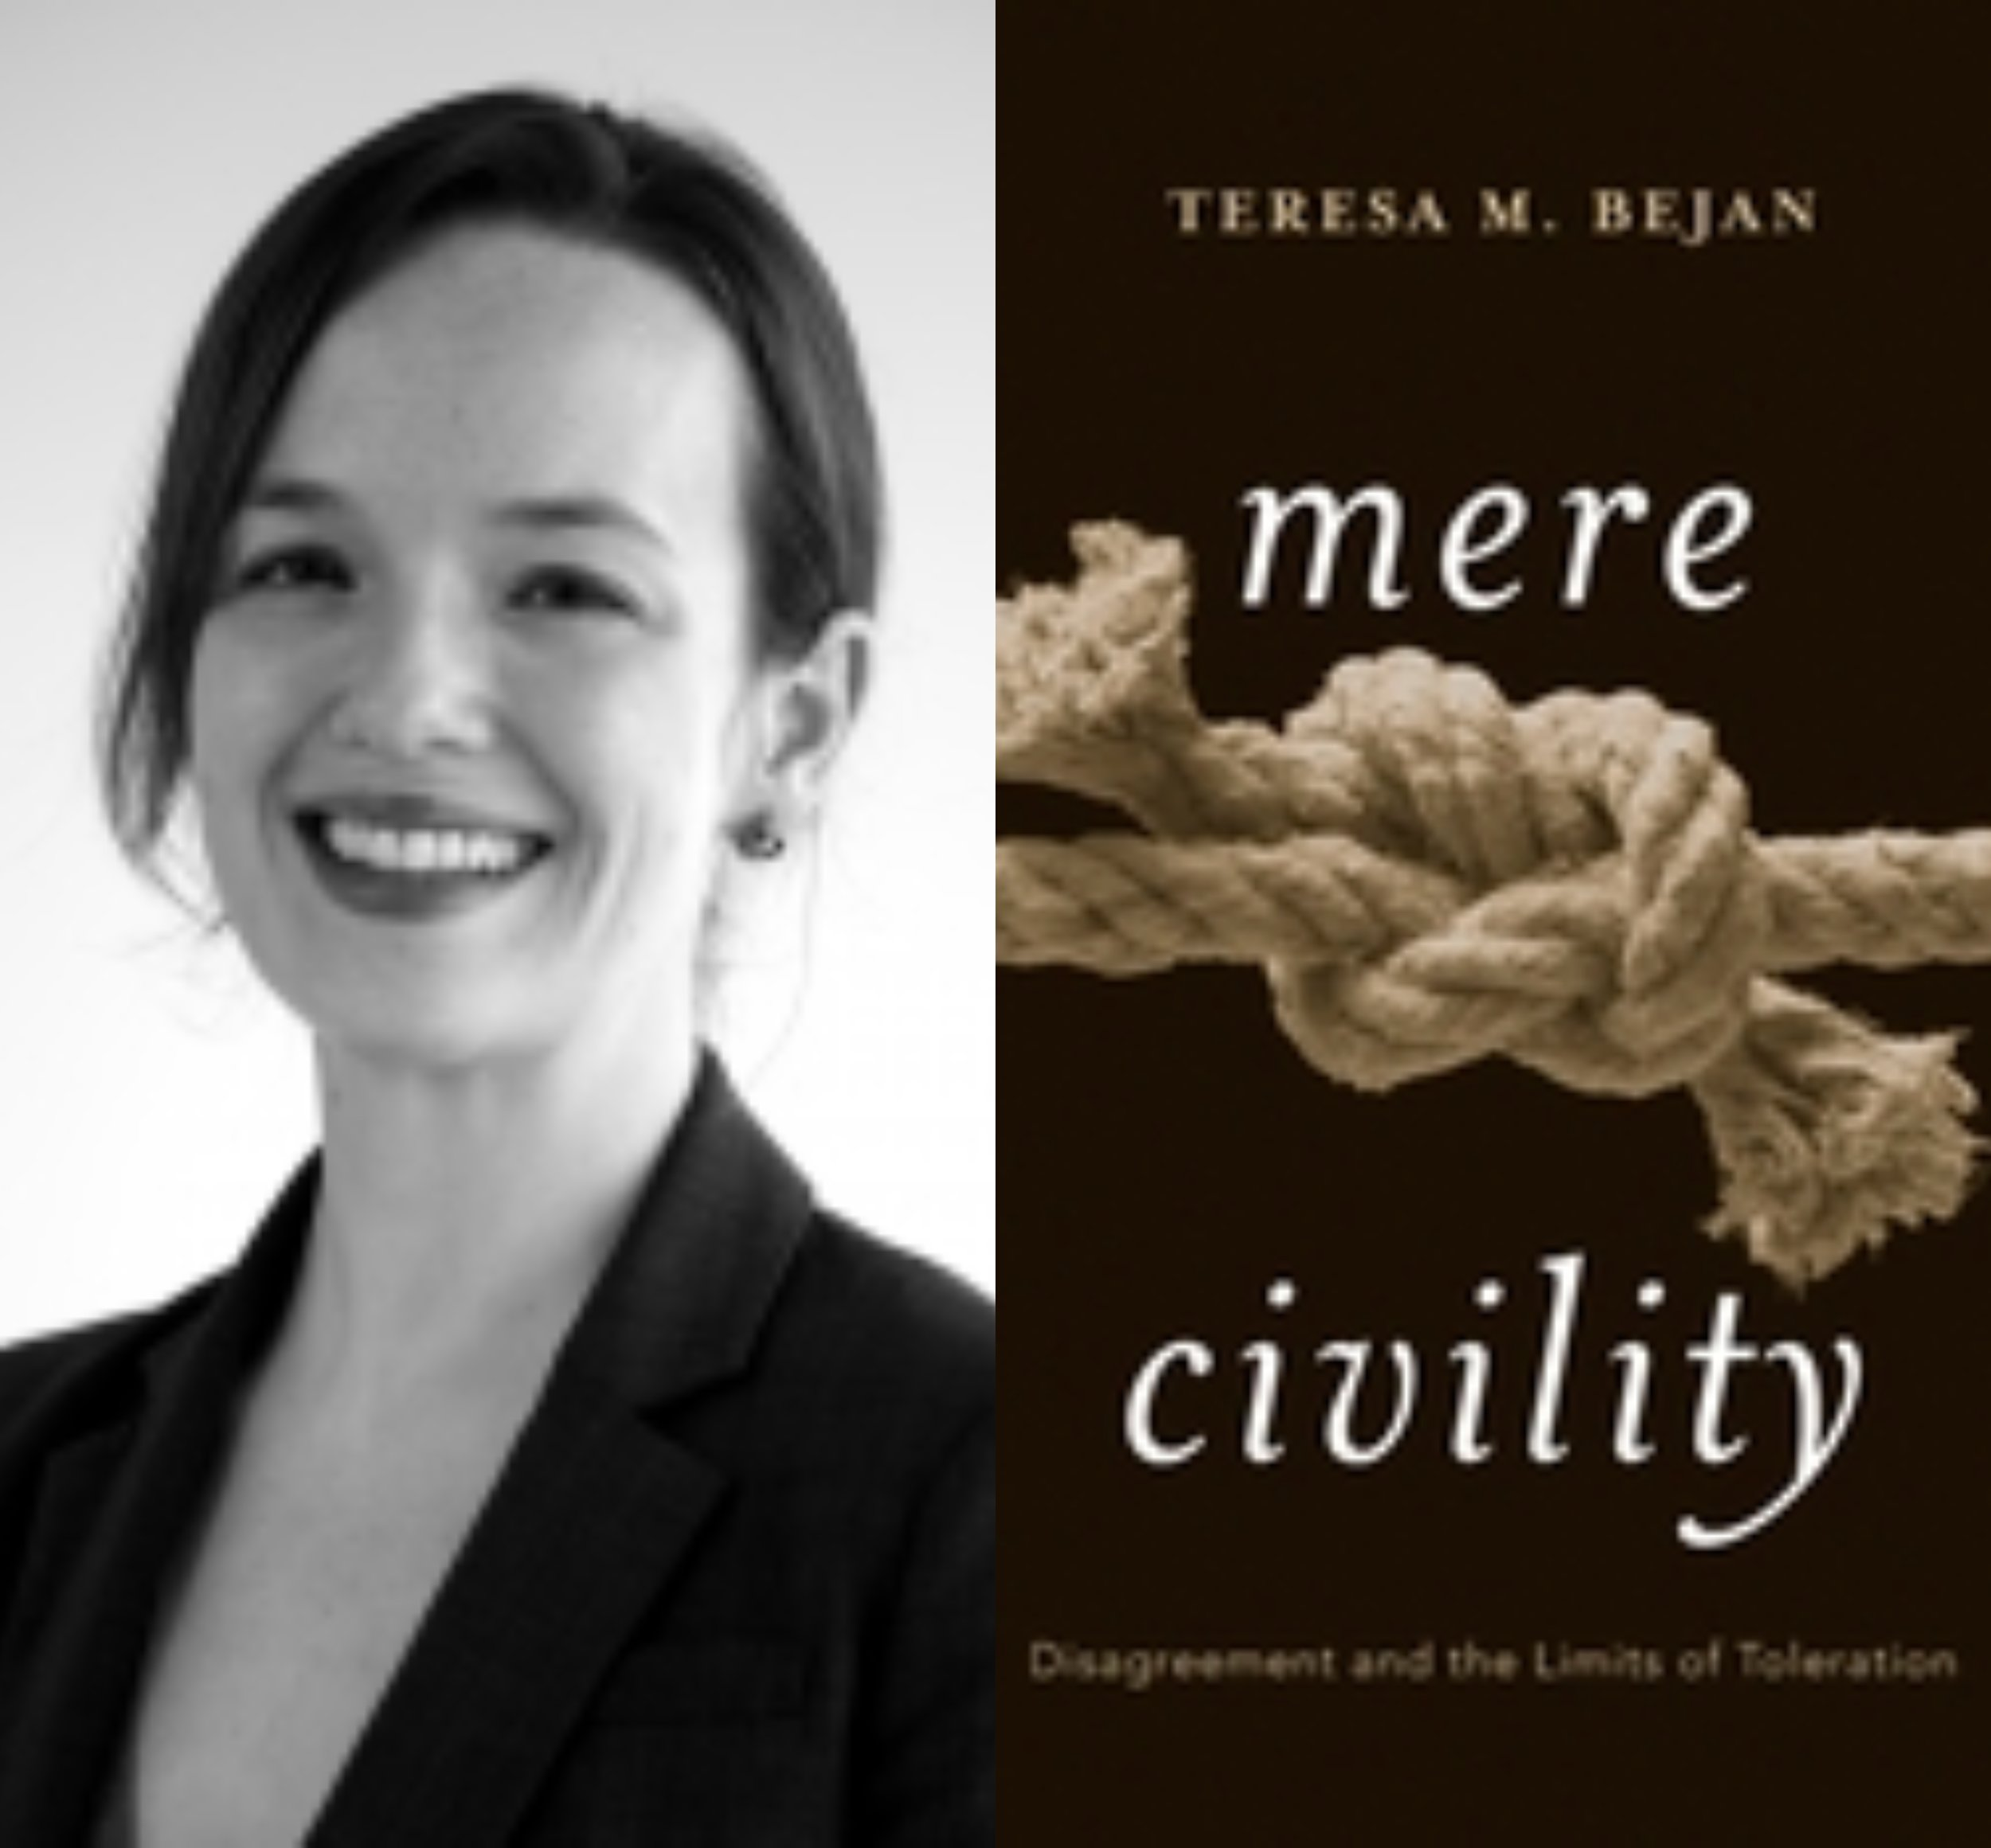 FREE SPEECH 31: When They Go Low, We Get…Civil? with Teresa Bejan - With Professor Teresa Bejan, Oxford UniversityREAD MORE